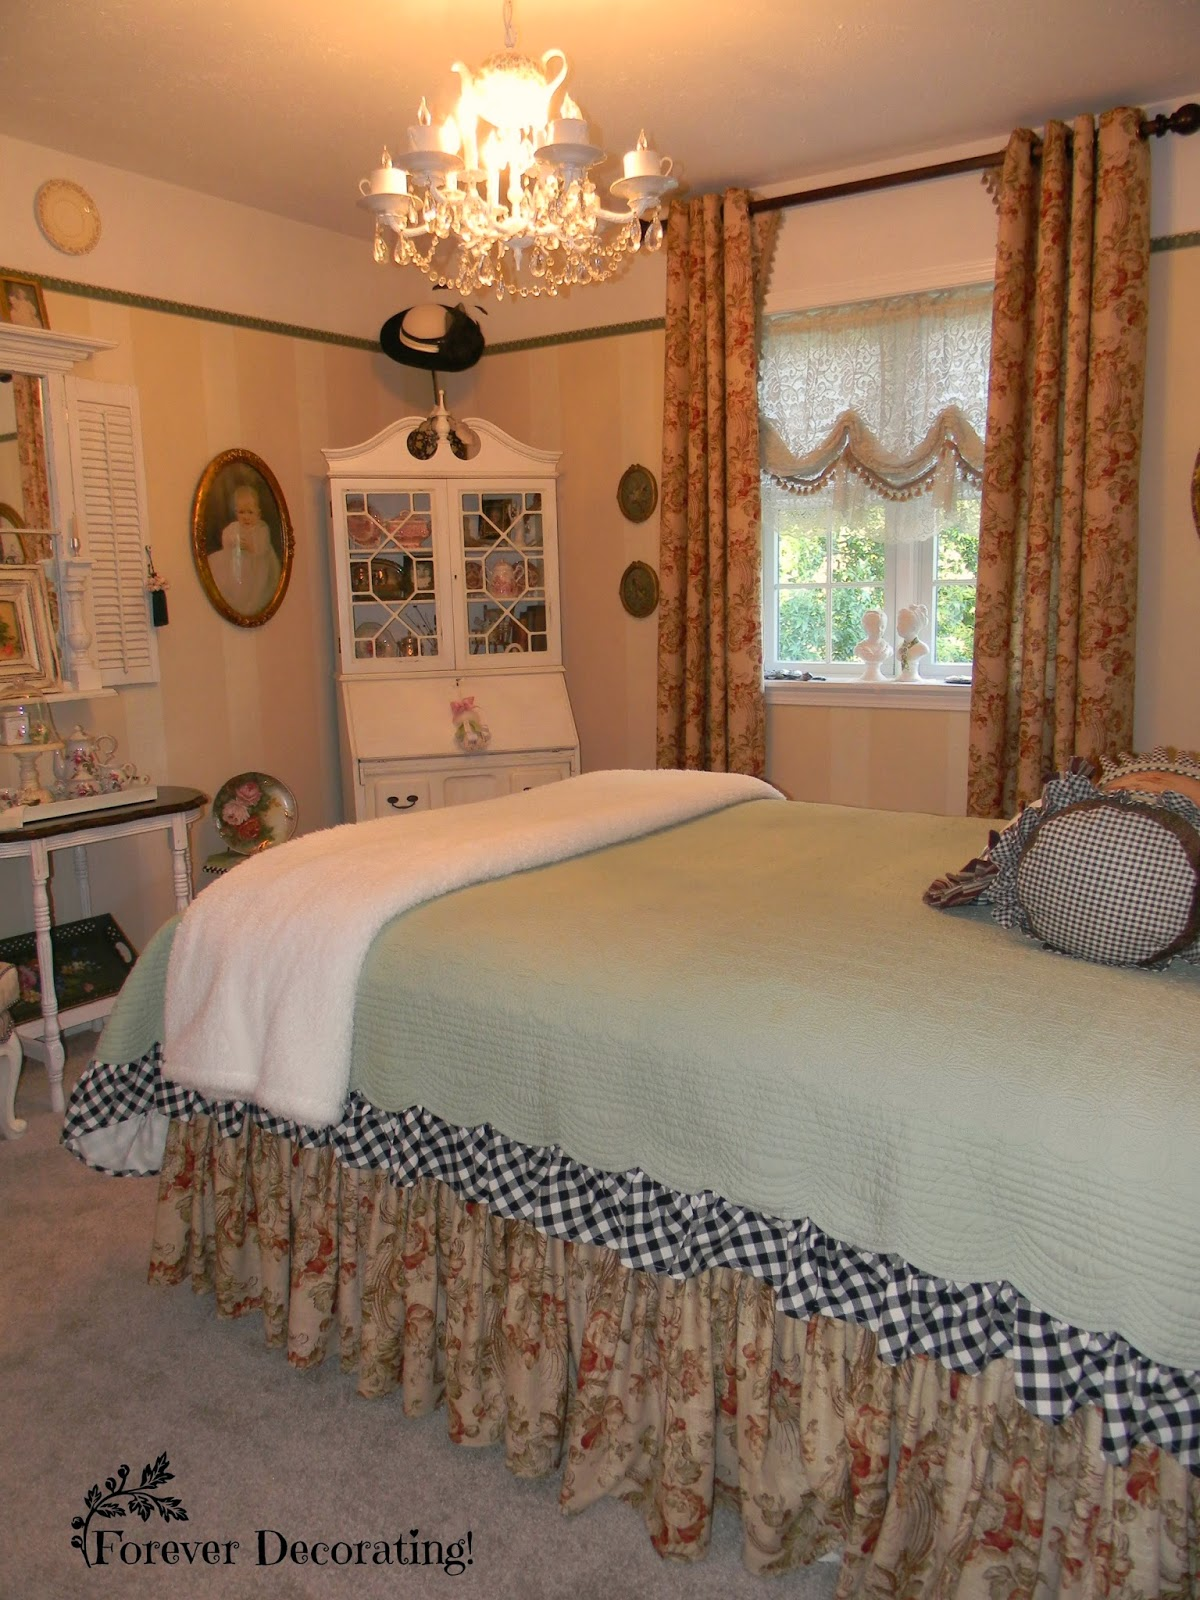 Forever Decorating Guest Bathroom Tour: Forever Decorating!: The Best Of 2014